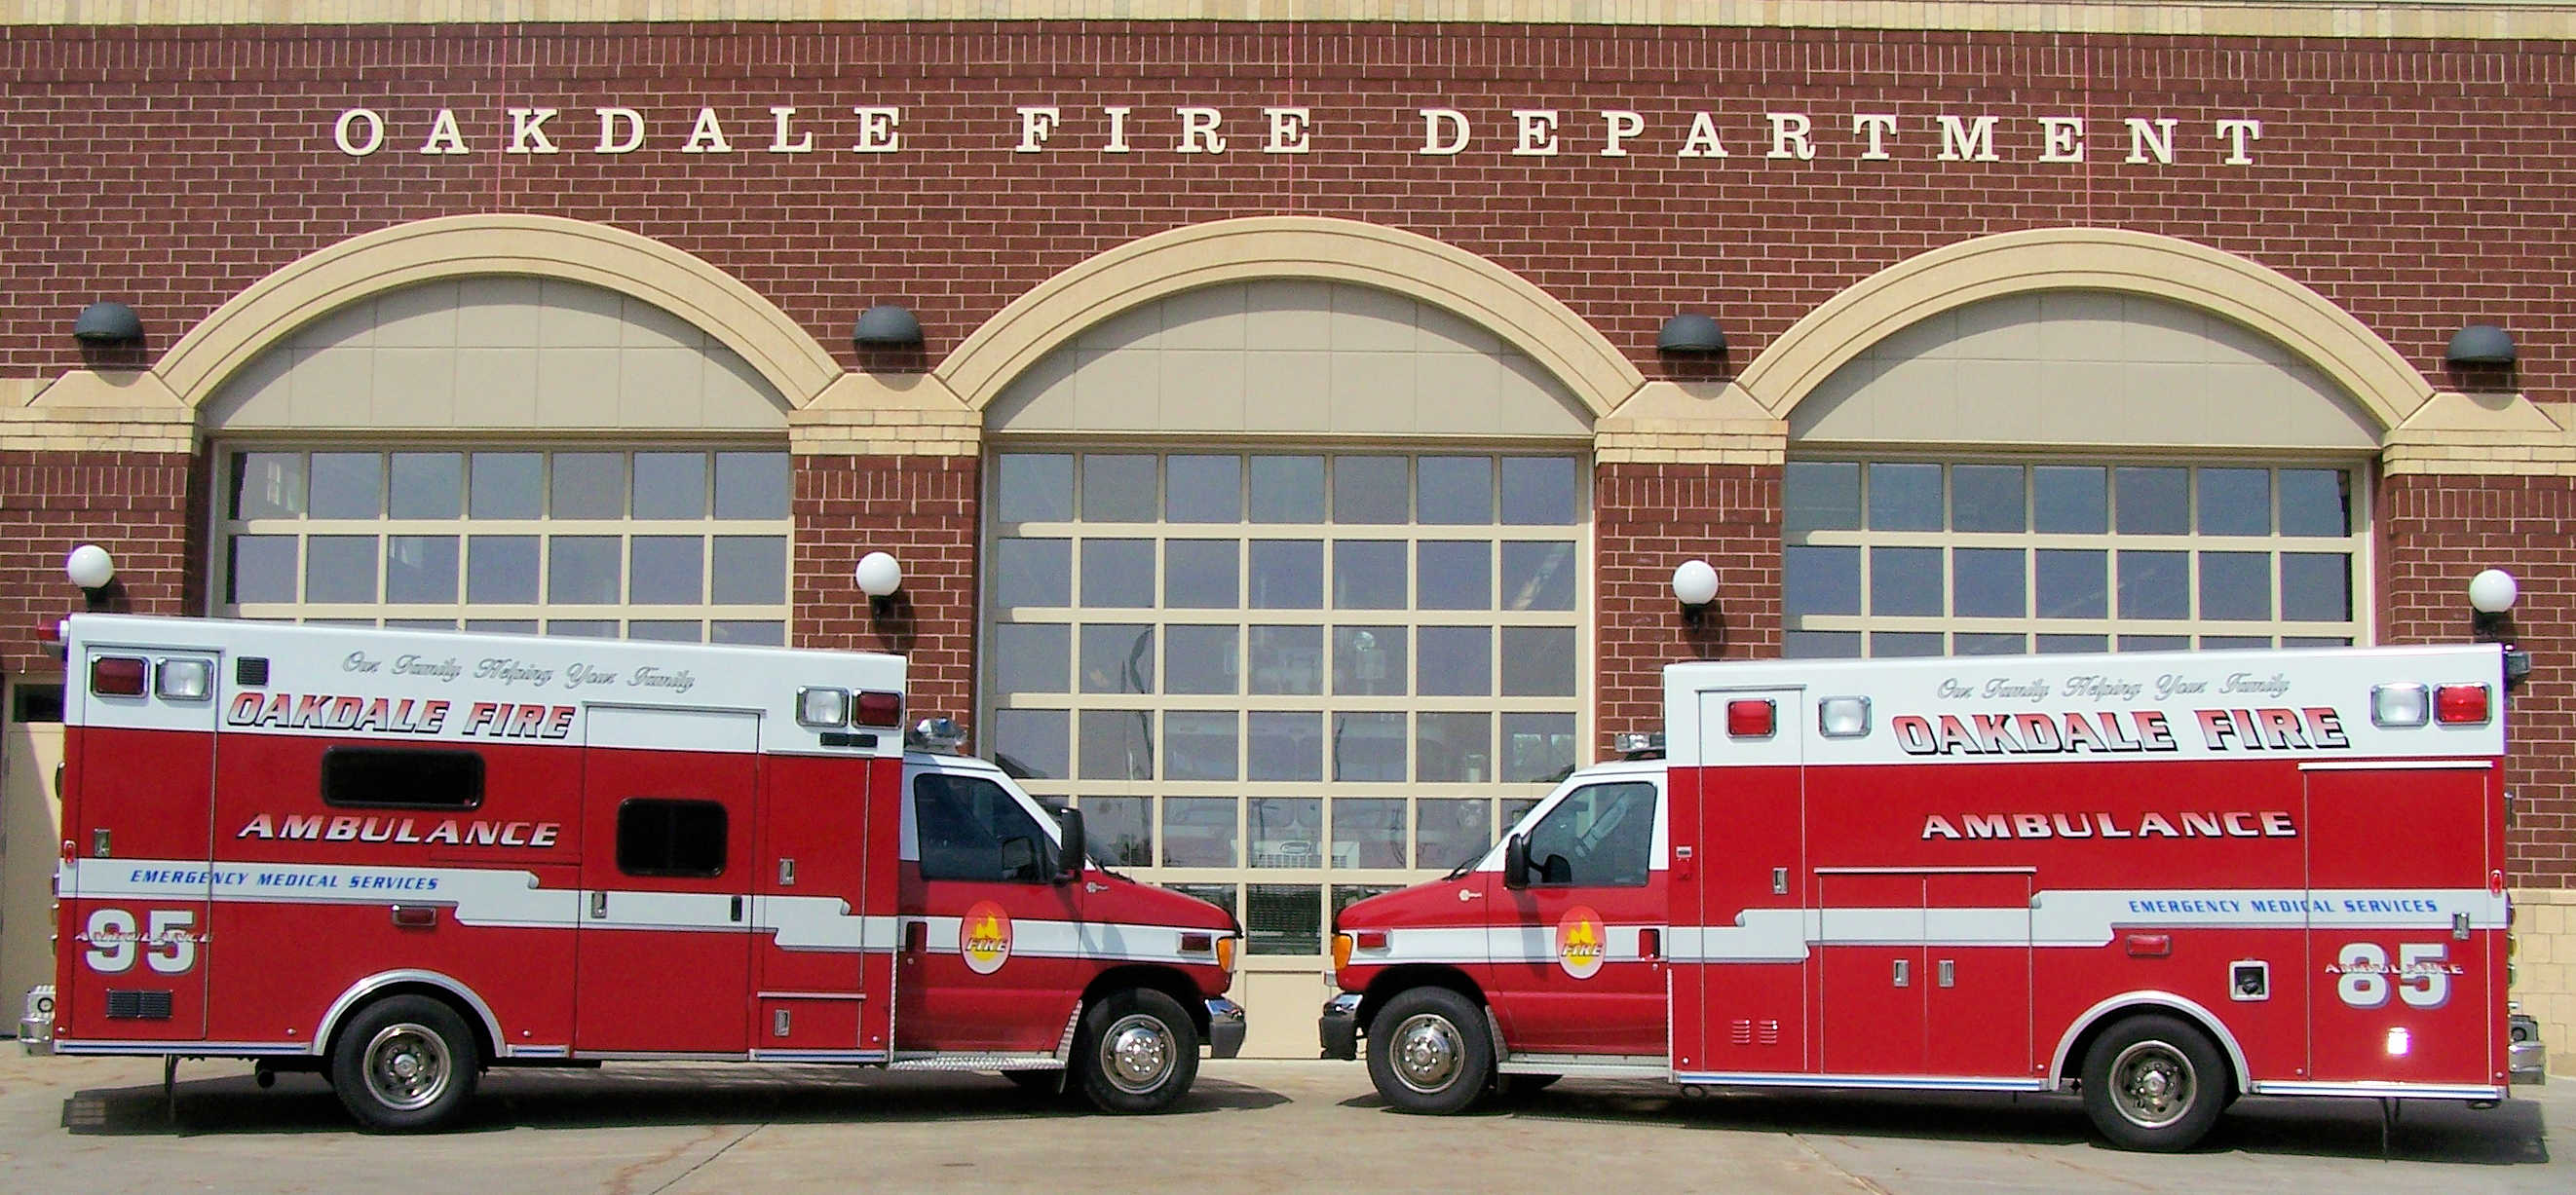 Photo of two Oakdale fire department ambulances parked in front of a fire station